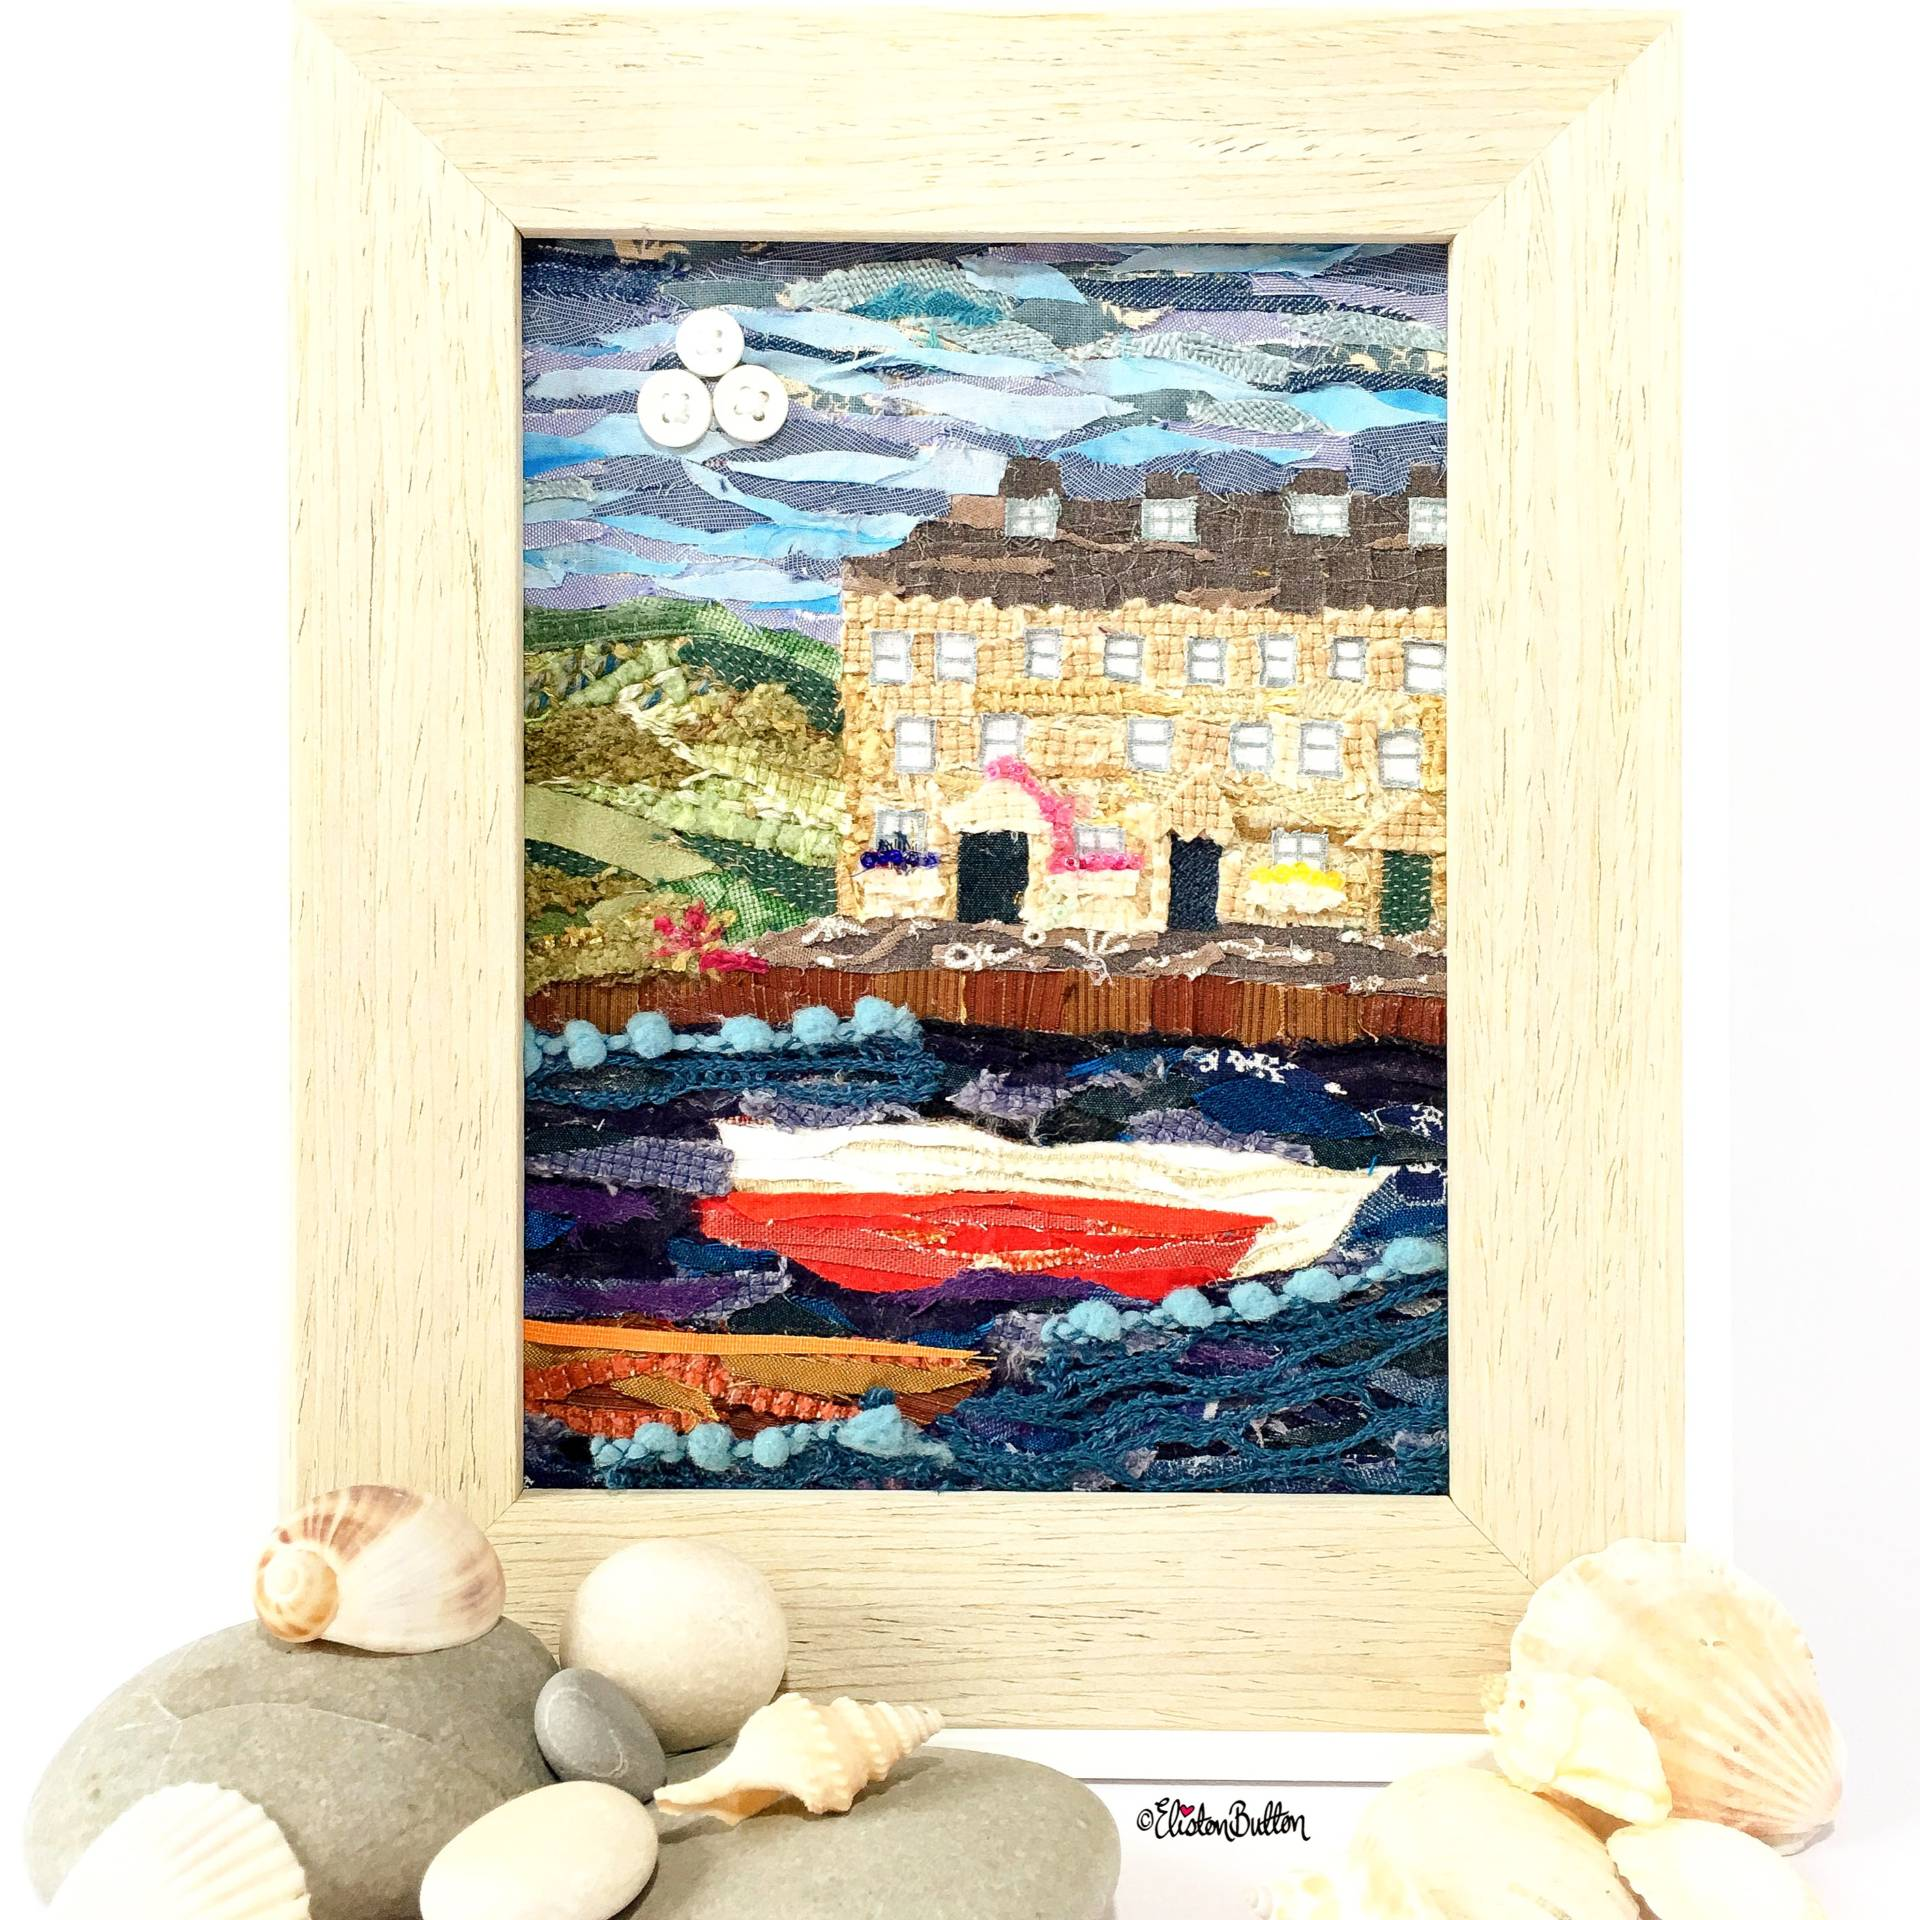 Seaside Harbour Original Fabric Collage by Eliston Button - Eliston Button is Four! at www.elistonbutton.com - Eliston Button - That Crafty Kid – Art, Design, Craft & Adventure.